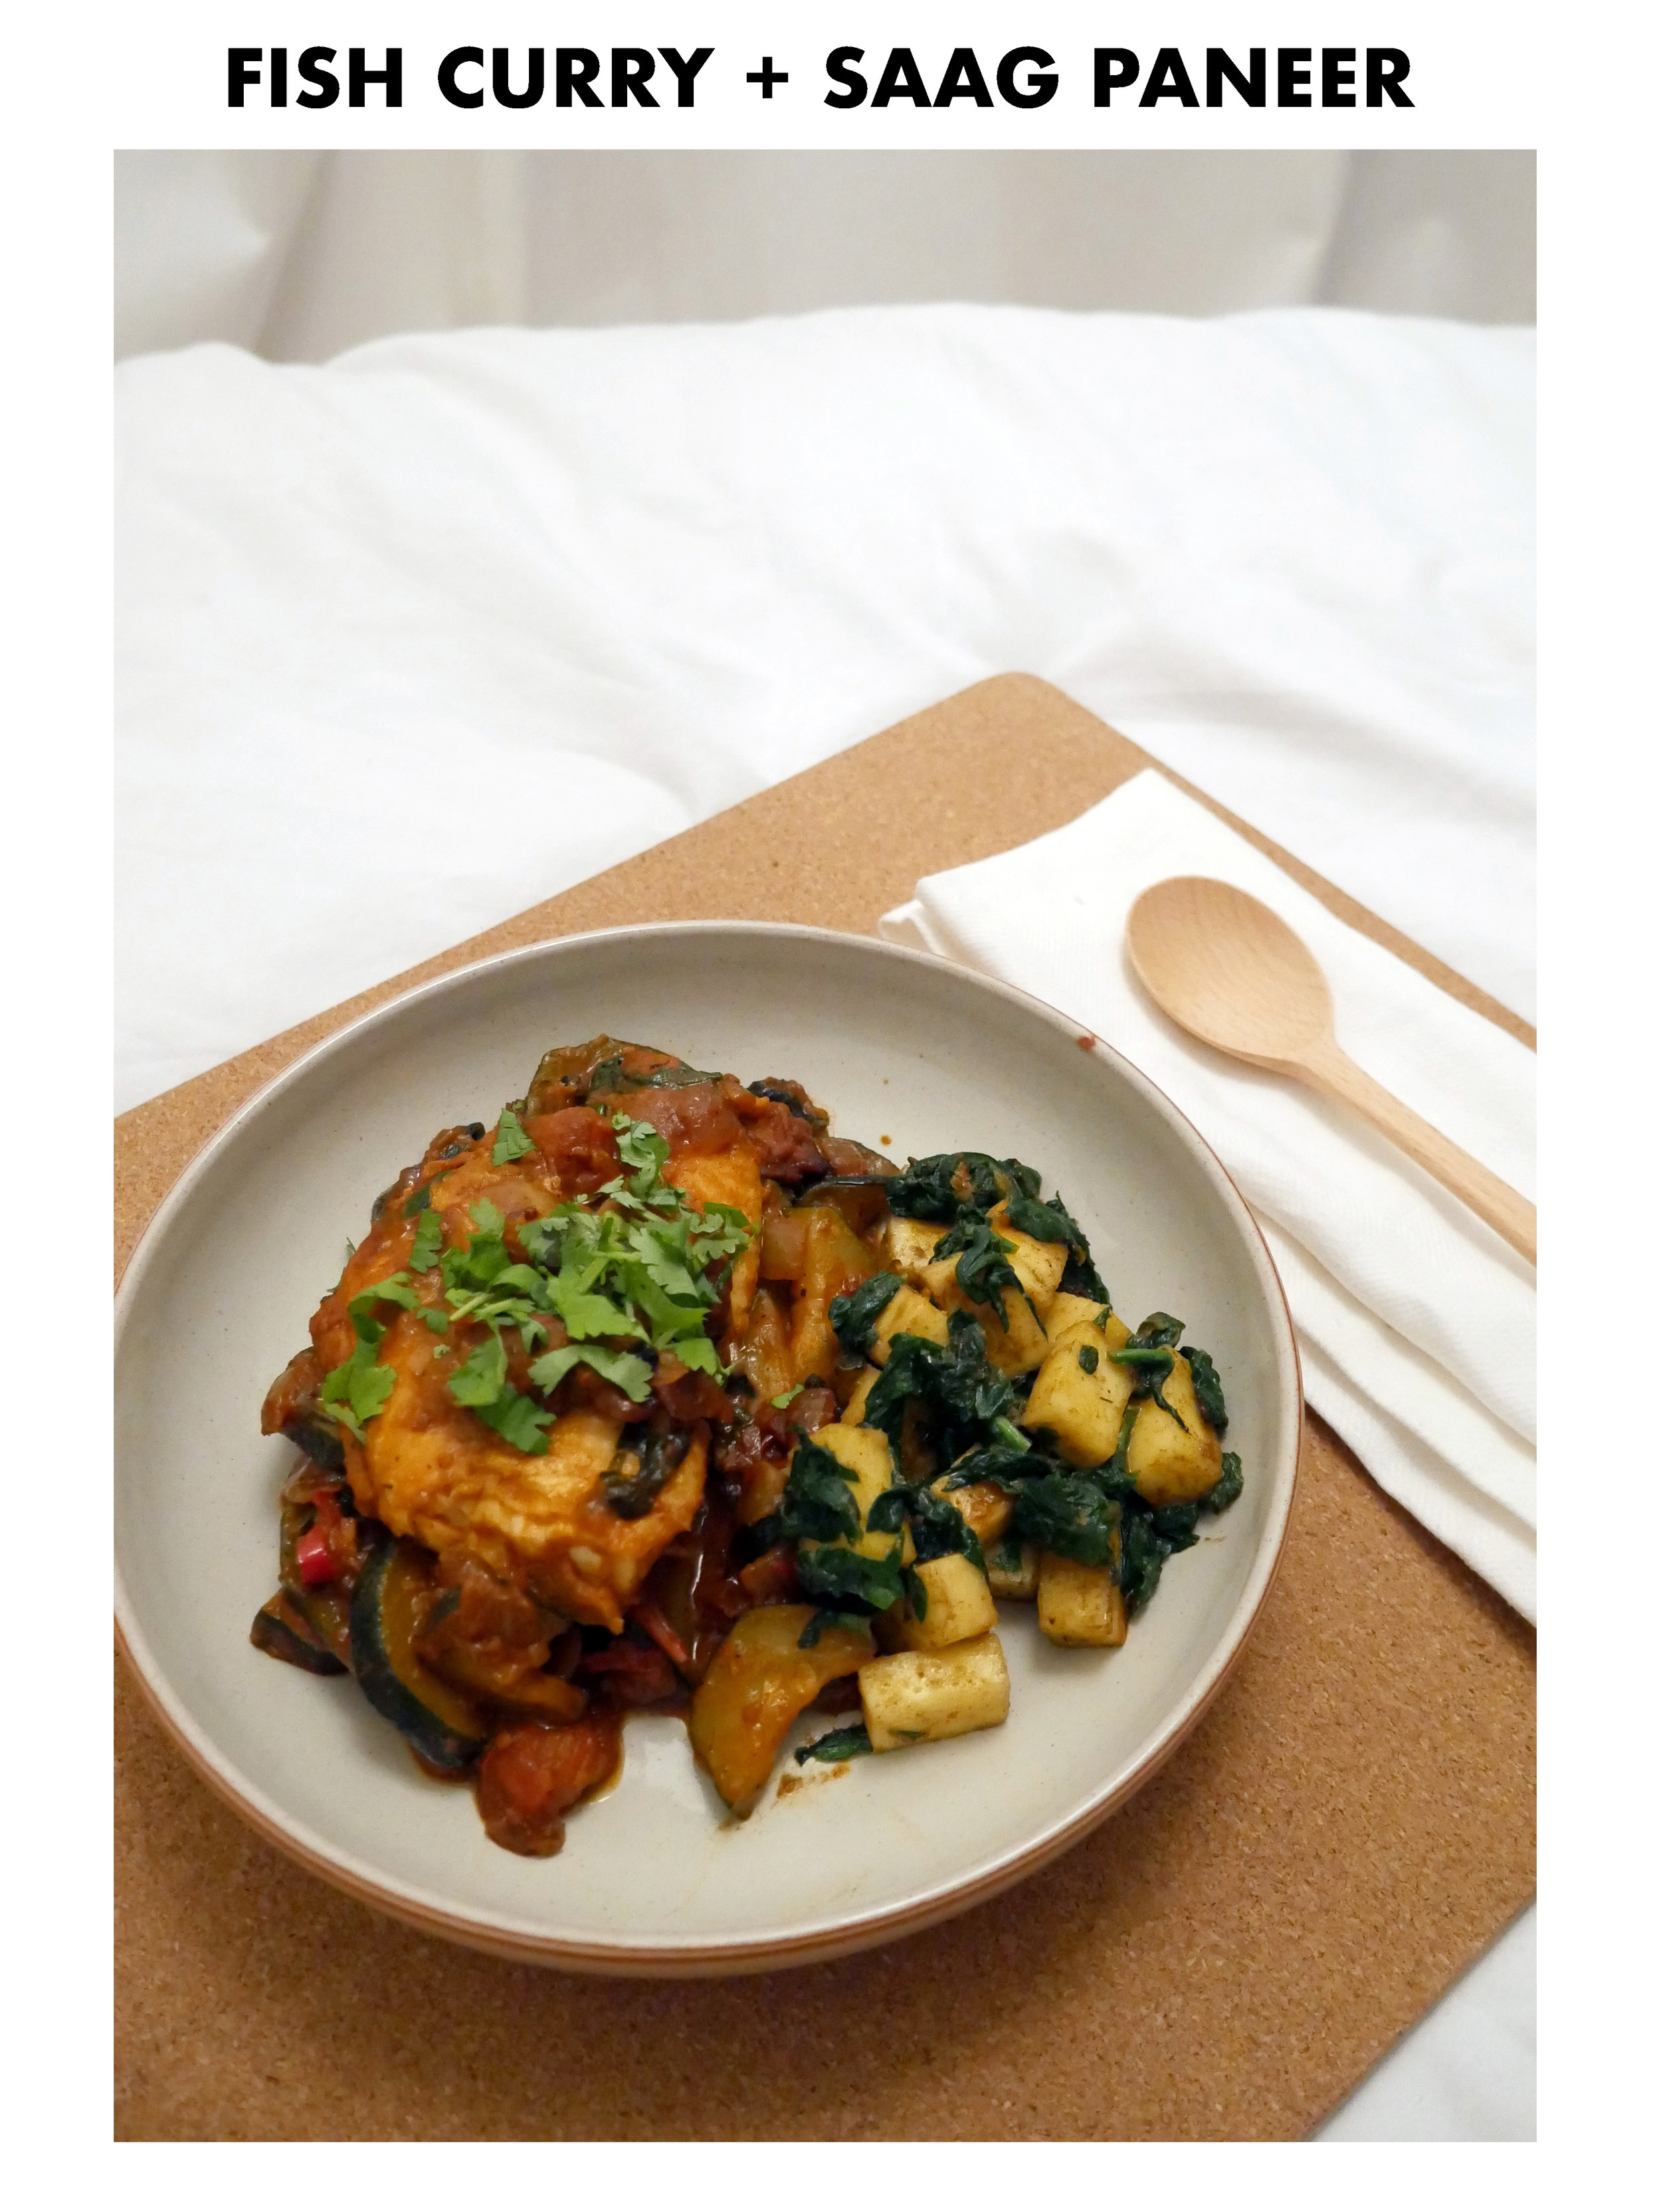 fish curry and saag paneer pic.jpg